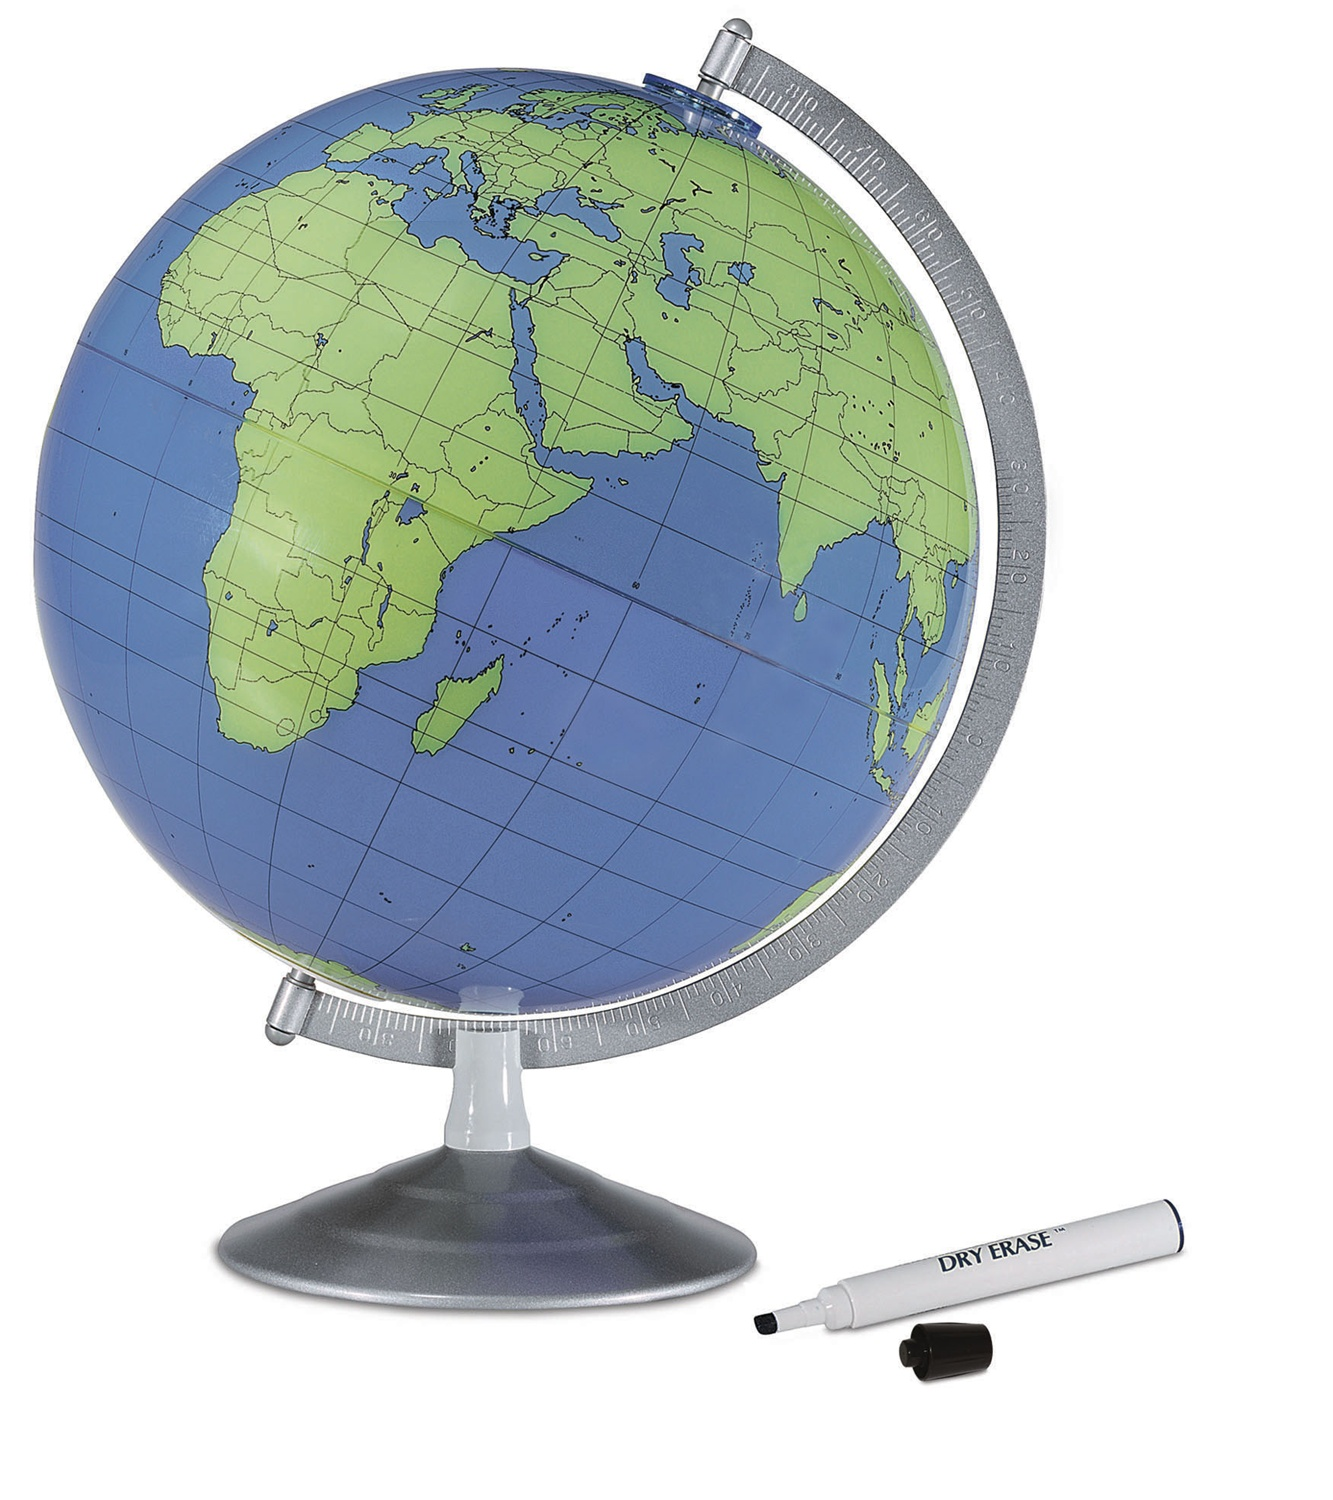 Replogle geographer dry erase globe ships free low price bookmark and share gumiabroncs Image collections